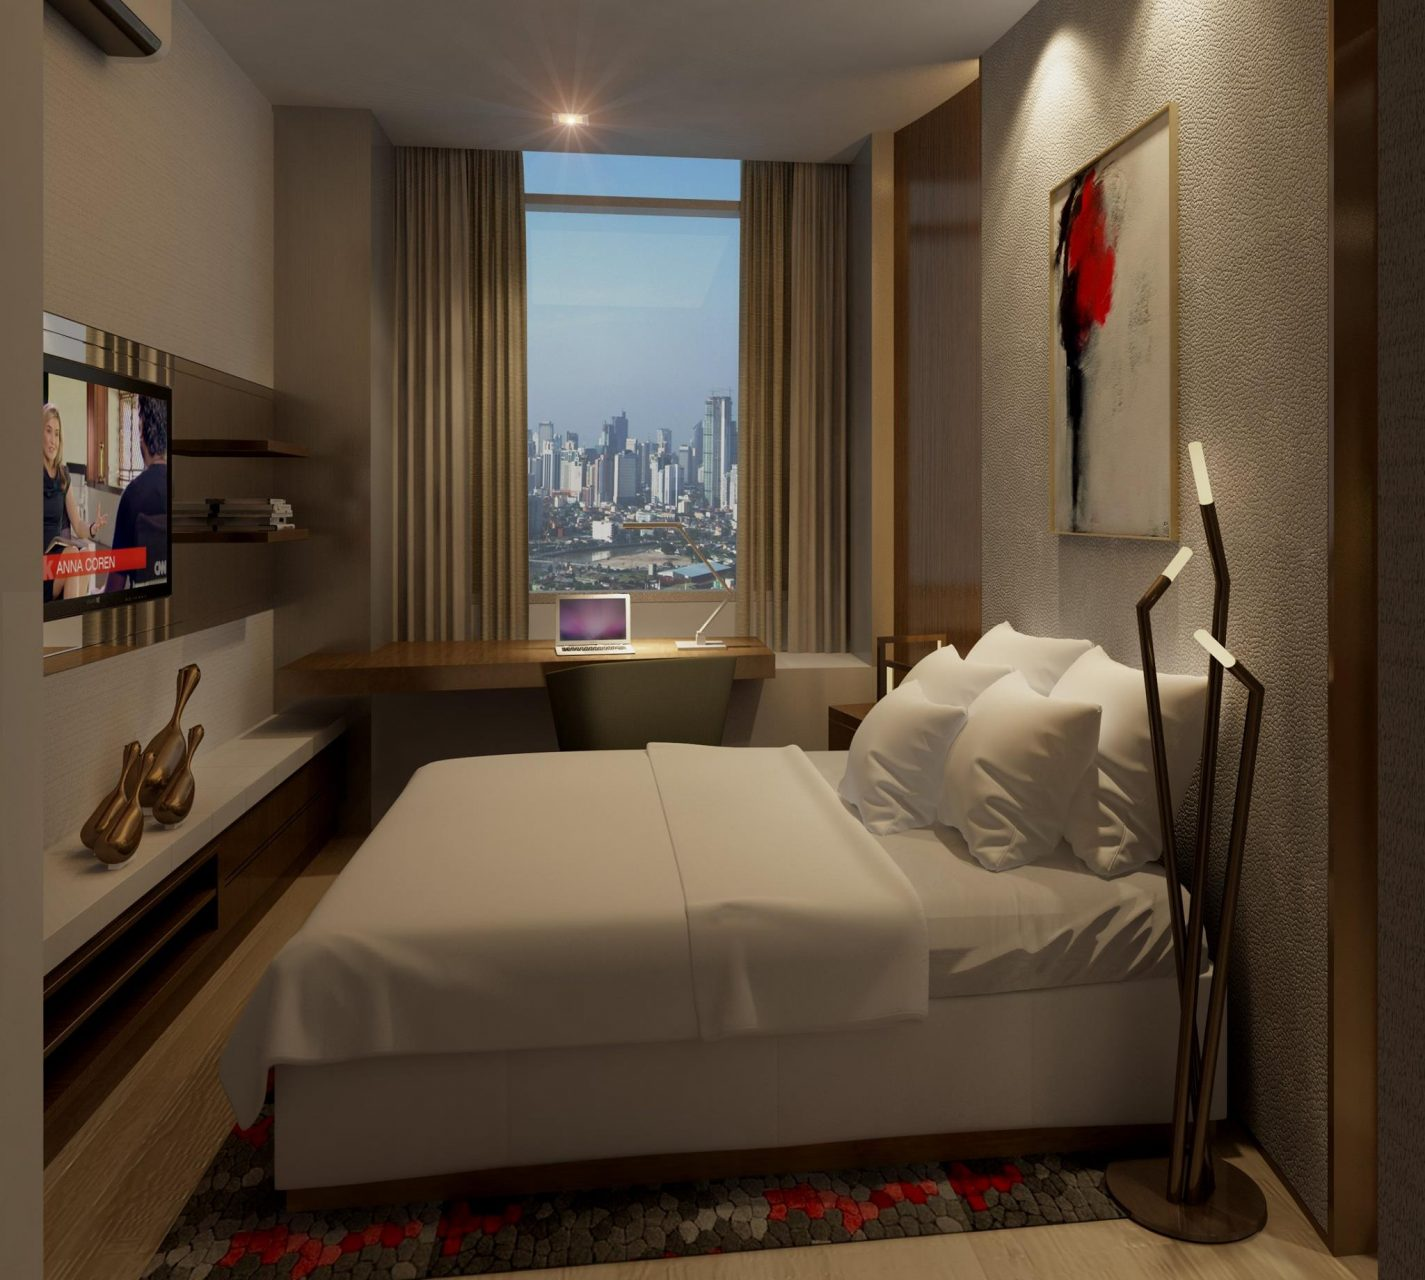 Dogpatch Condo Master Bedroom: Residences At The Westin Manila Sonata Place Condo For